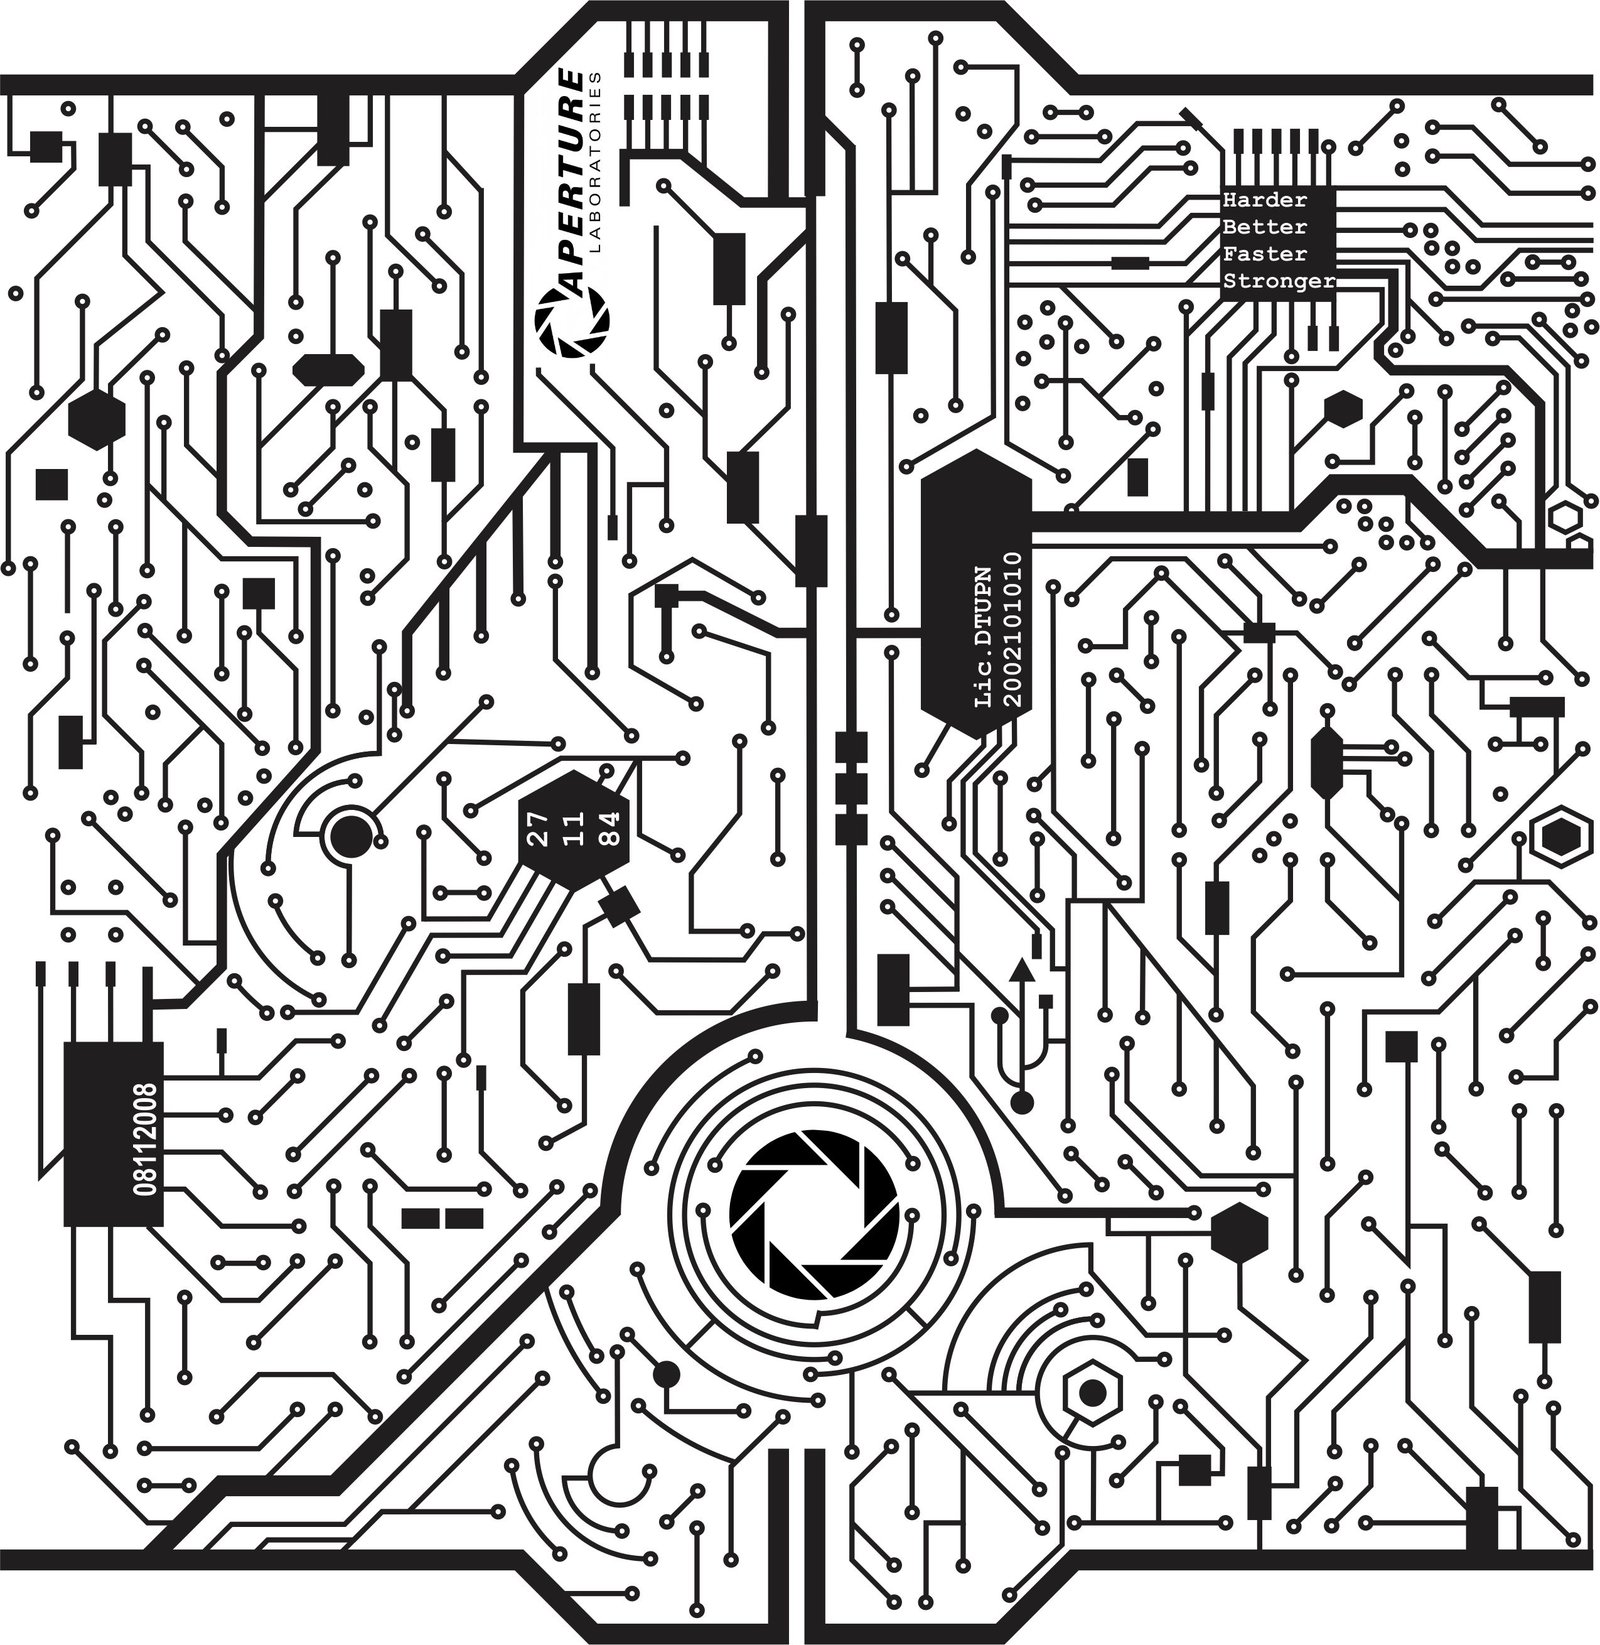 Circuit Board Drawing At Free For Personal Use Diagram Tattoo 1600x1645 Sketch By On